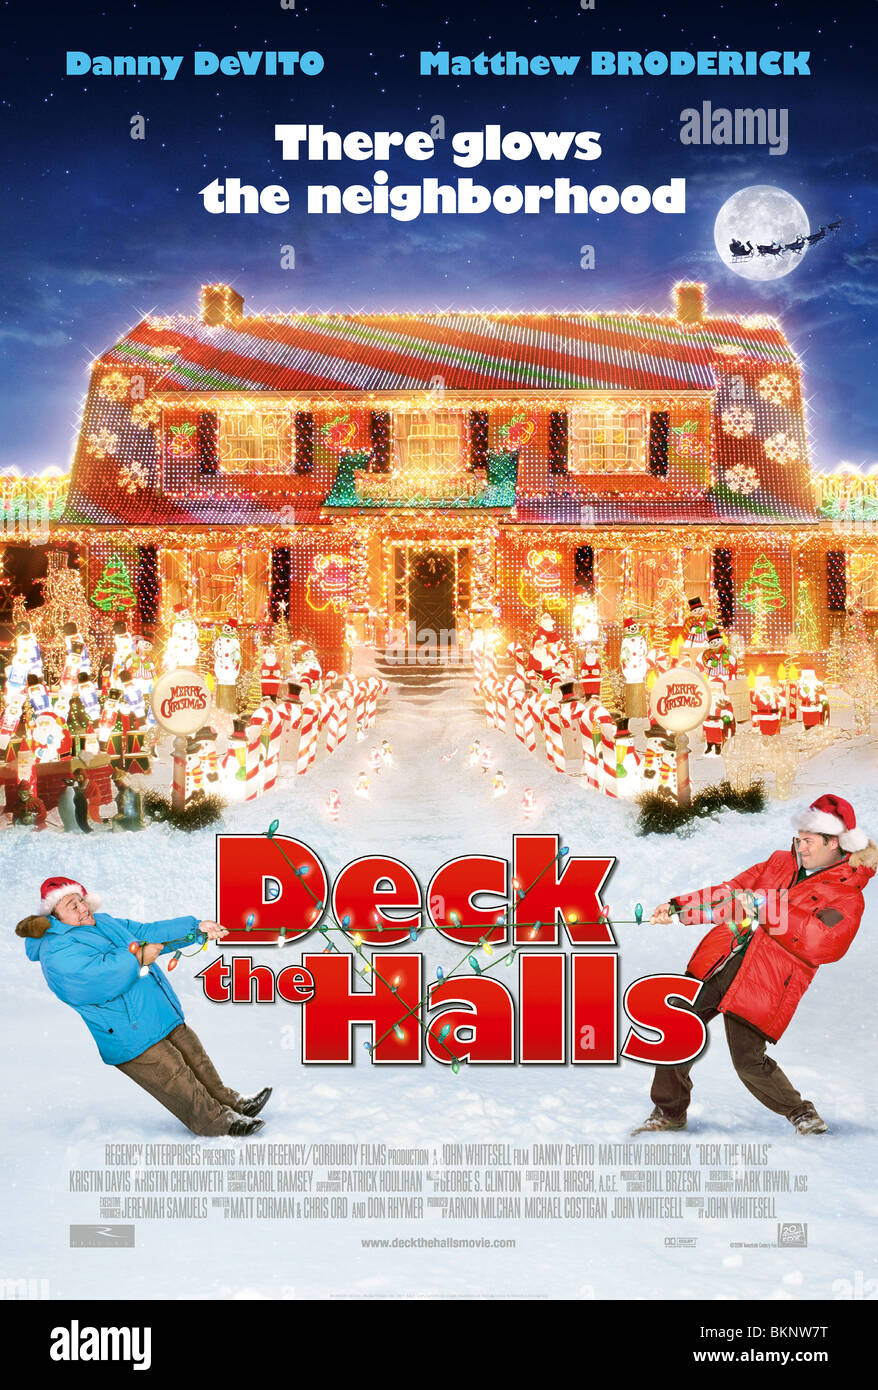 DECK THE HALLS -2006 POSTER - Stock Image